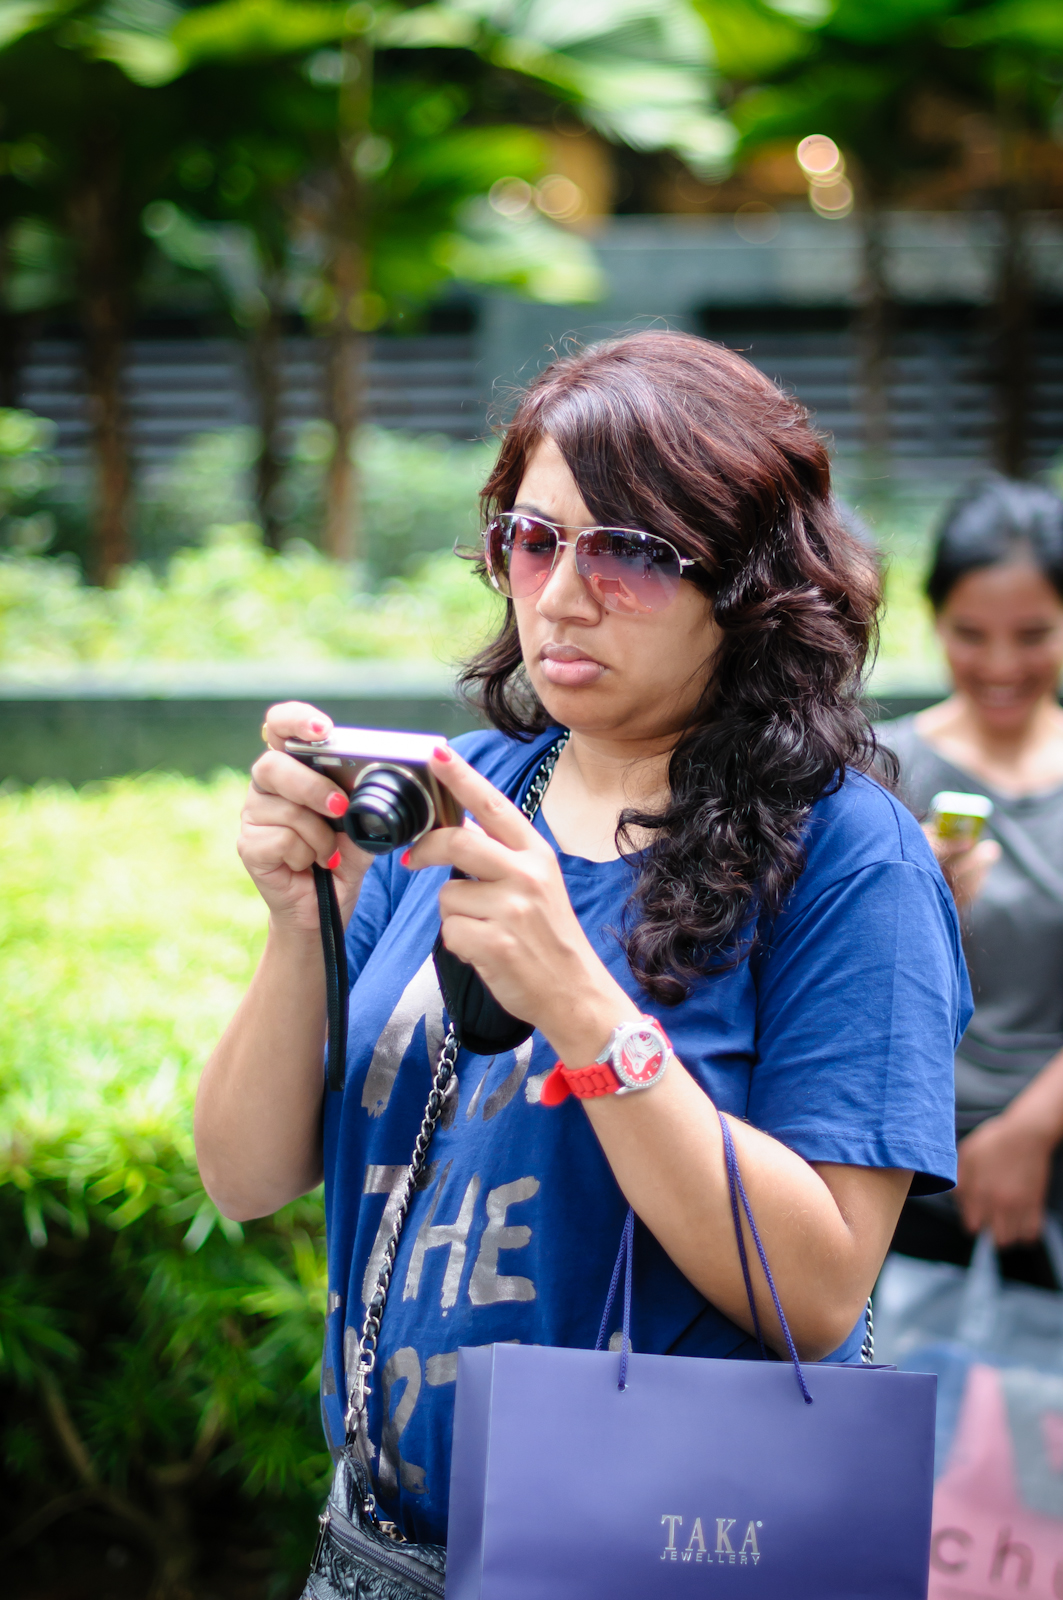 Street photography - tourist looking at her camera